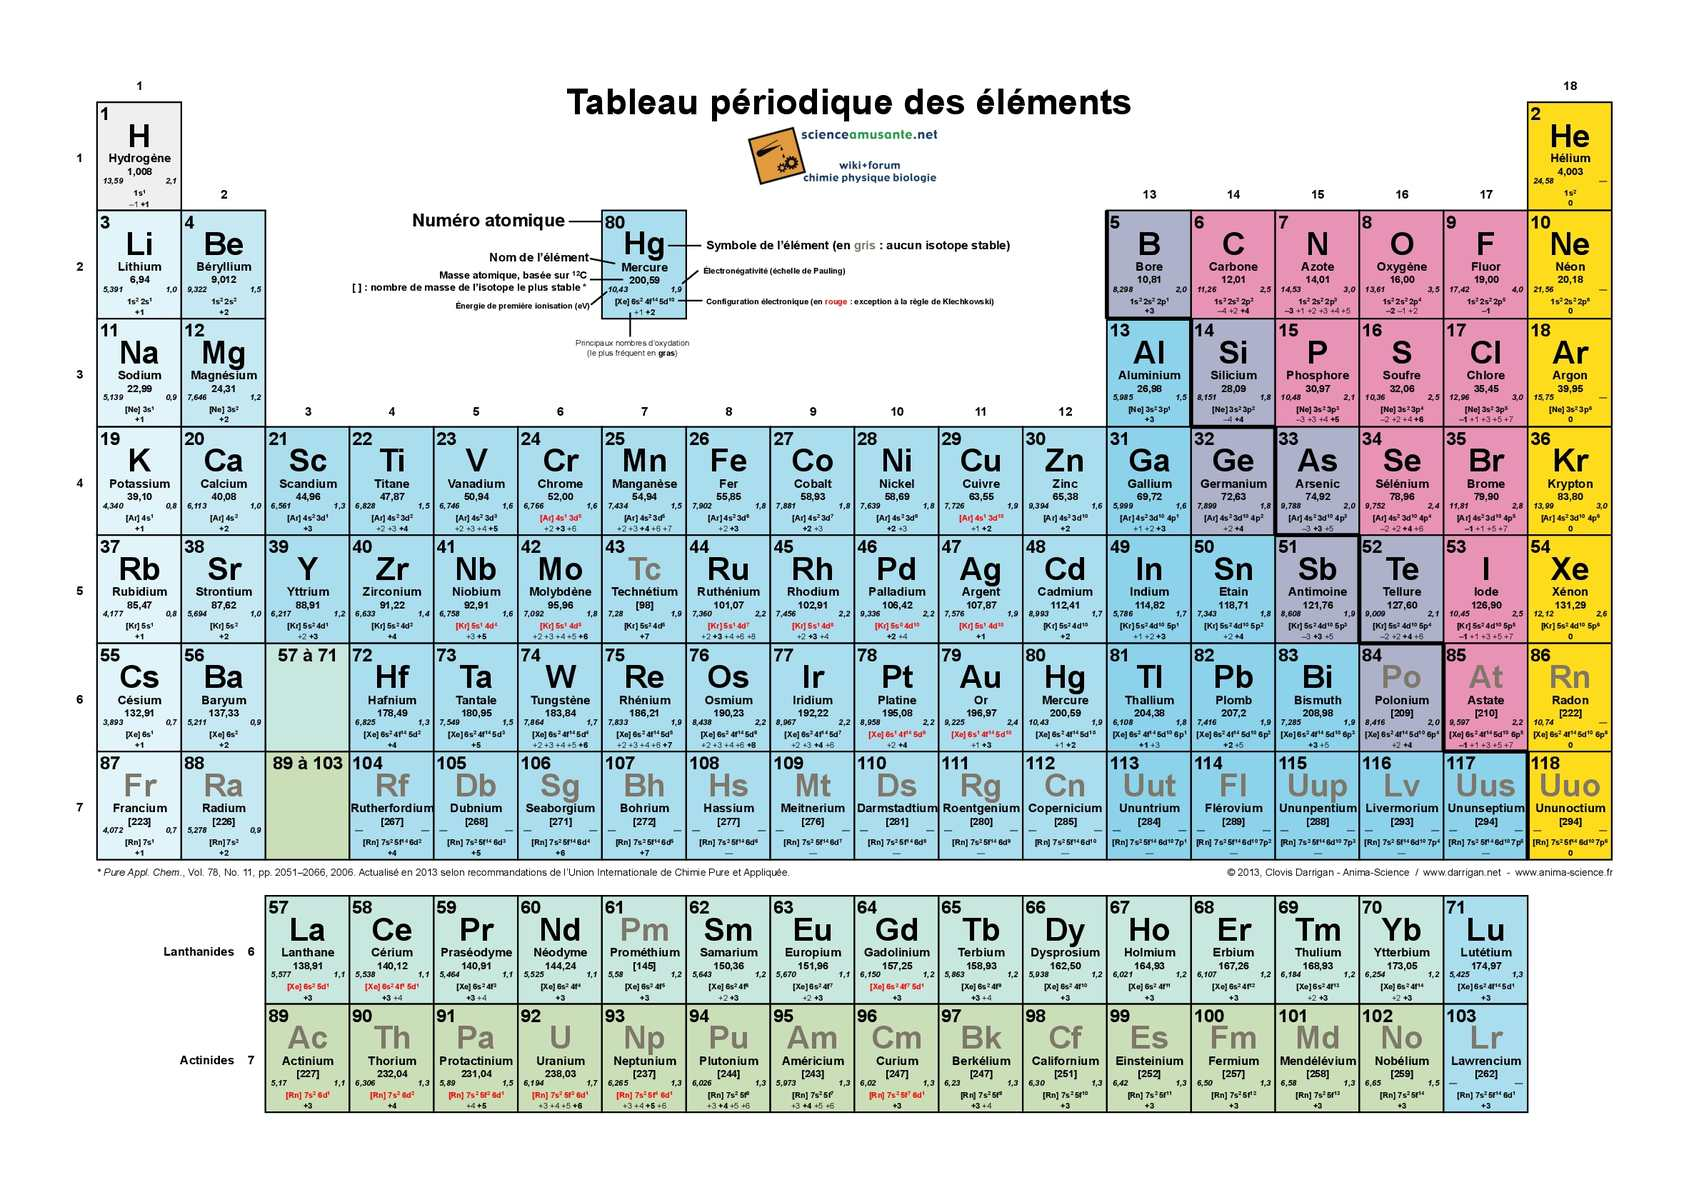 The gallery for sodium on the periodic table for Tableau periodique